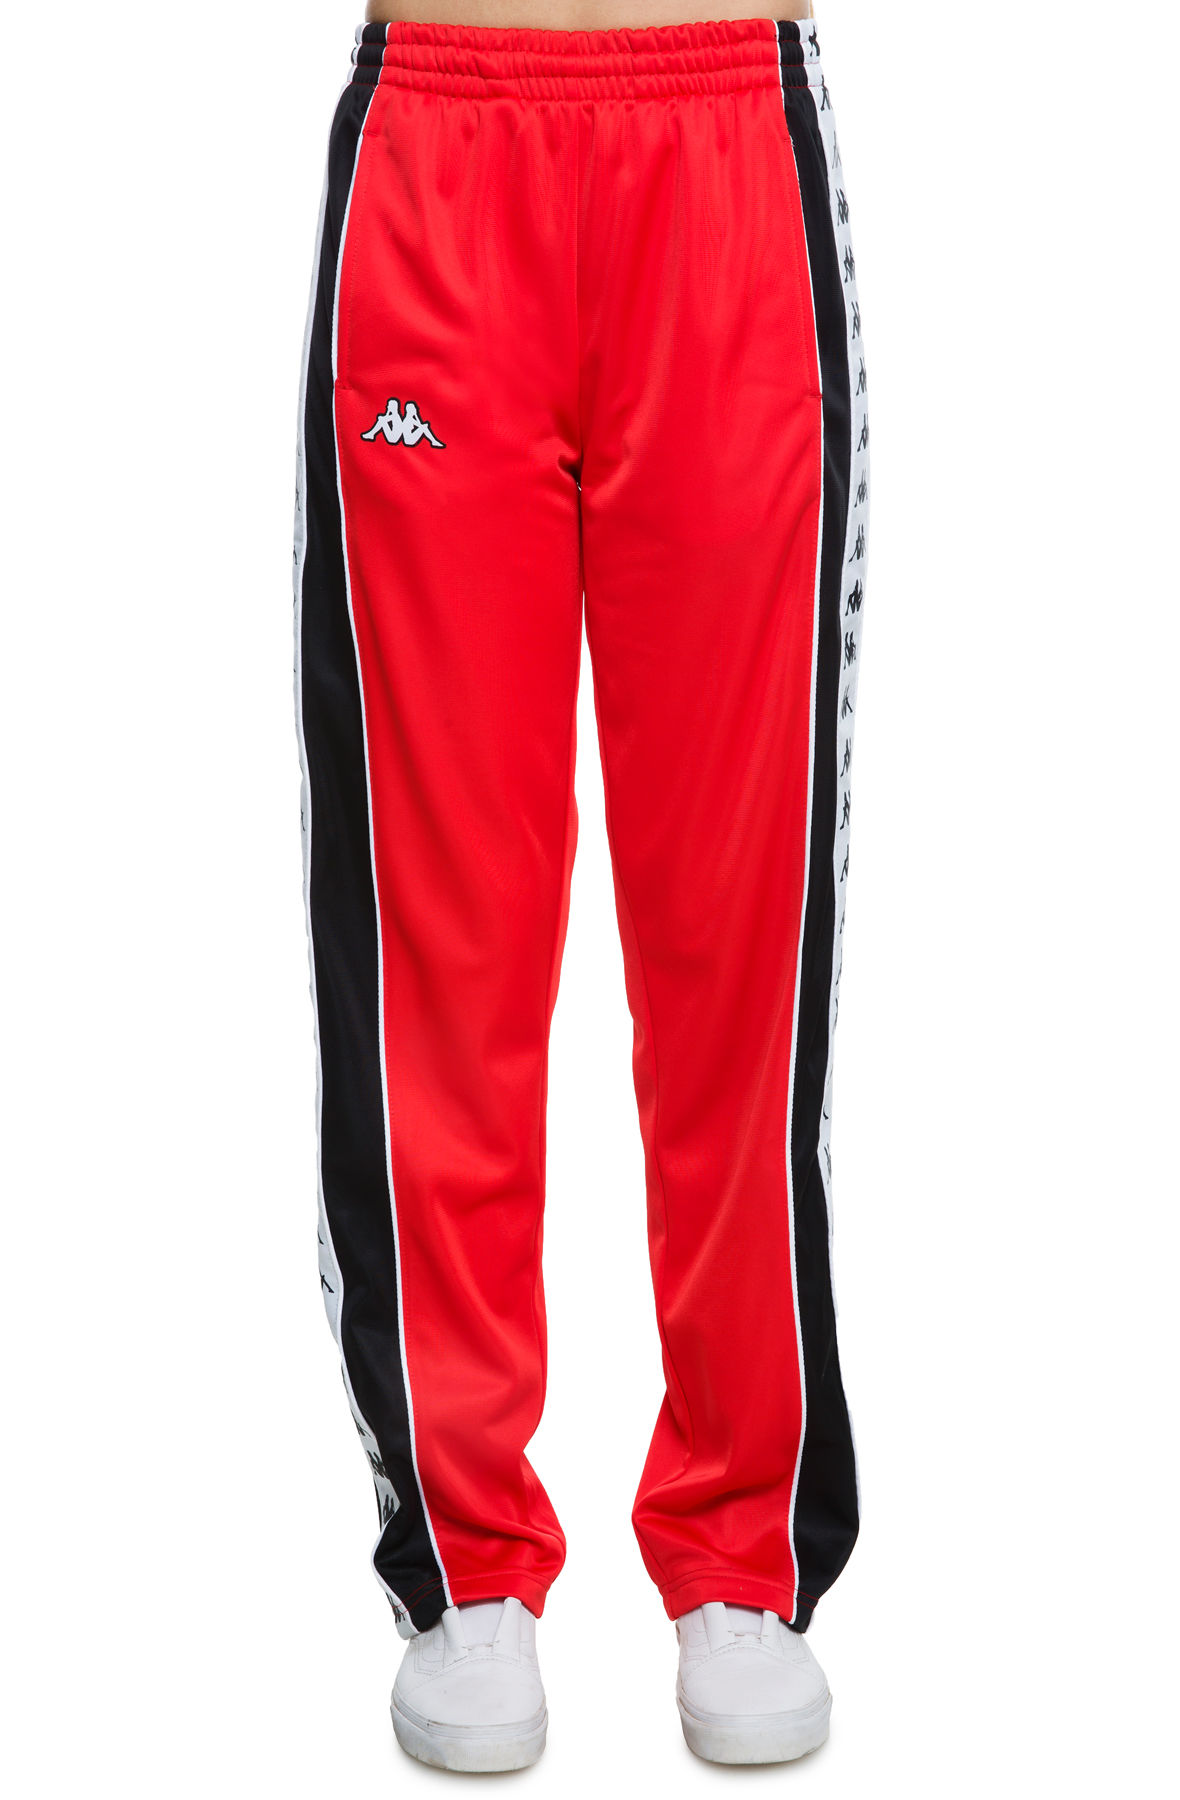 Image of The 222 Banda Big Bay Pant in Red; Black; and White